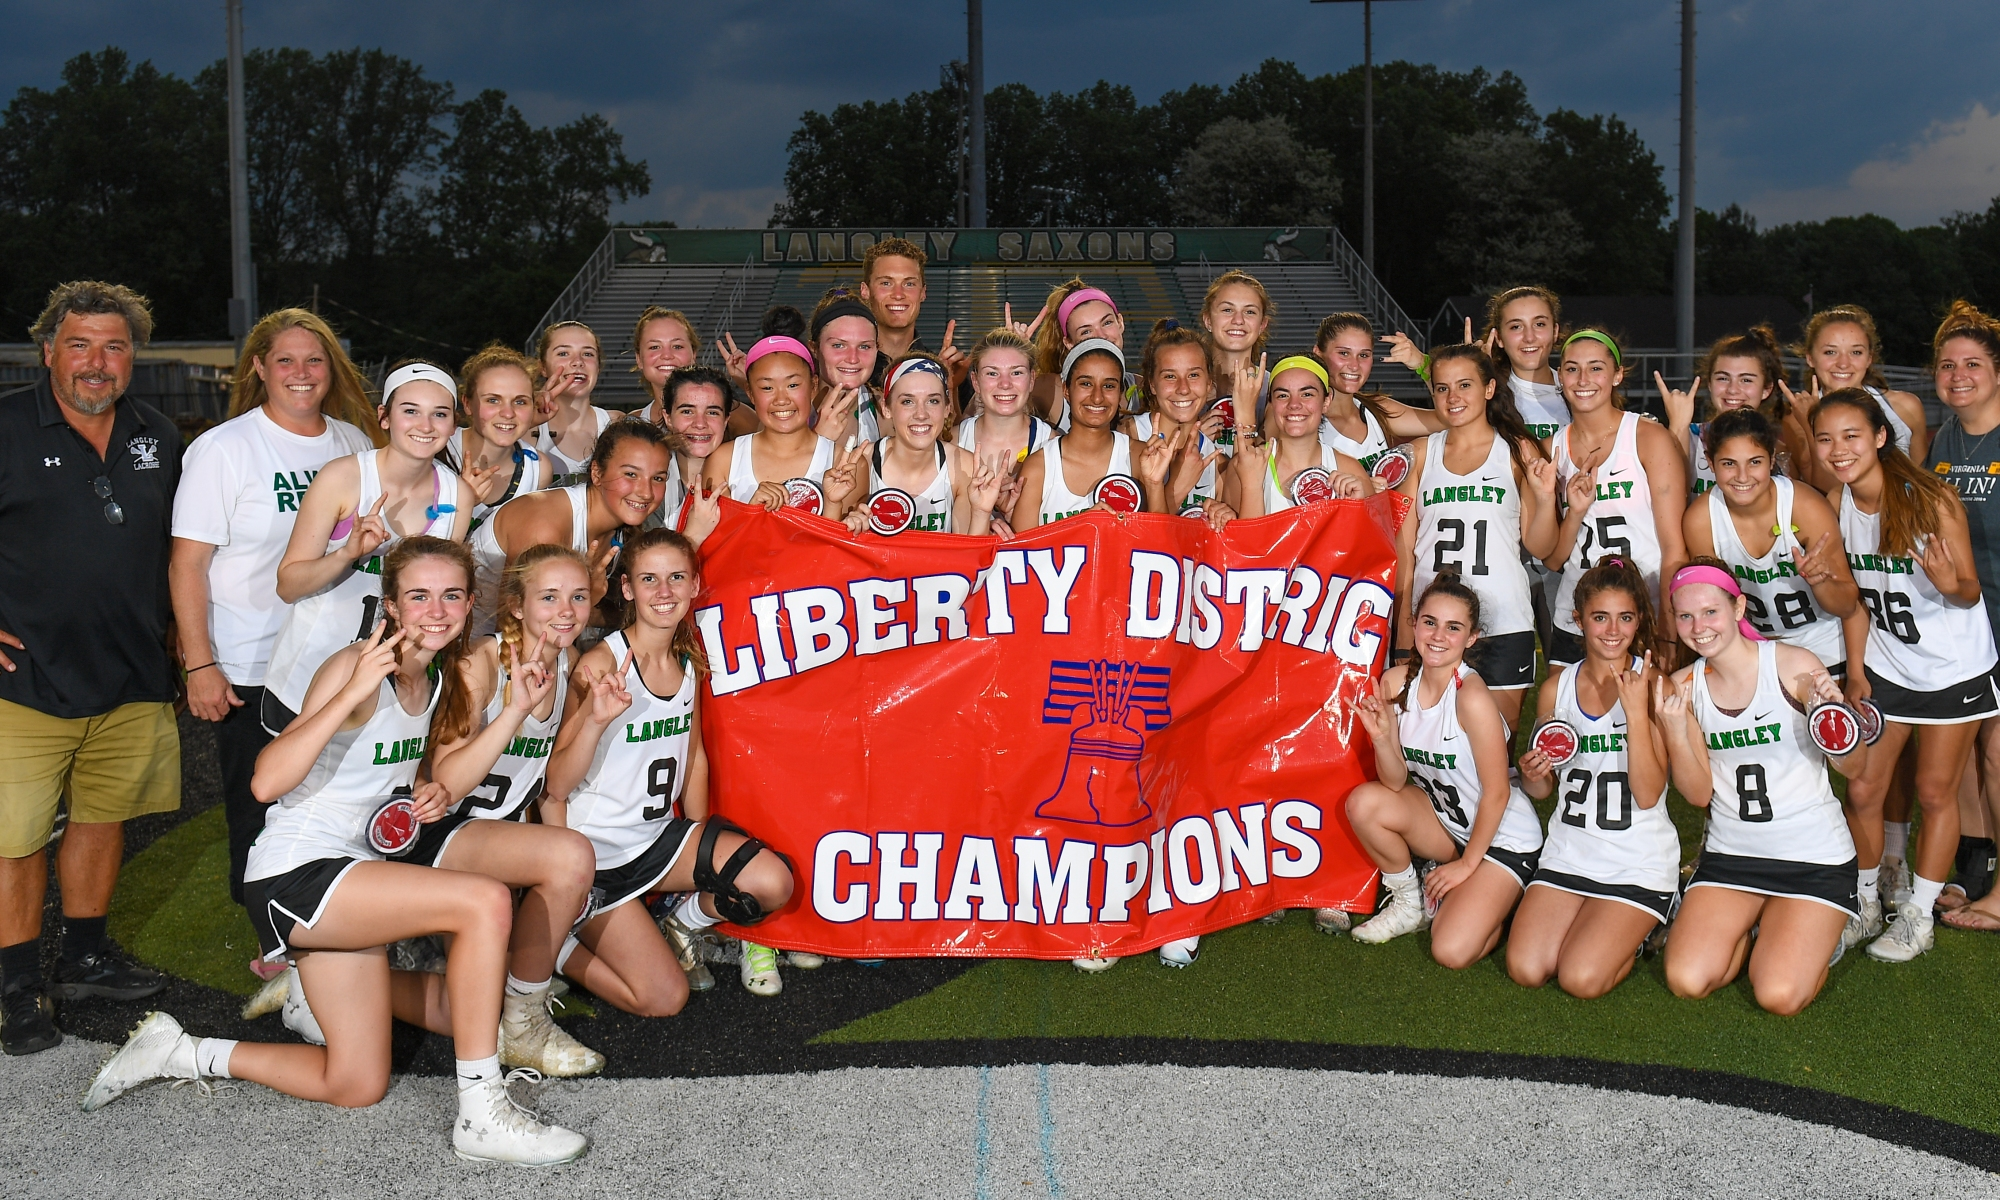 Langley Girls Lacrosse 2018 Liberty District Champs